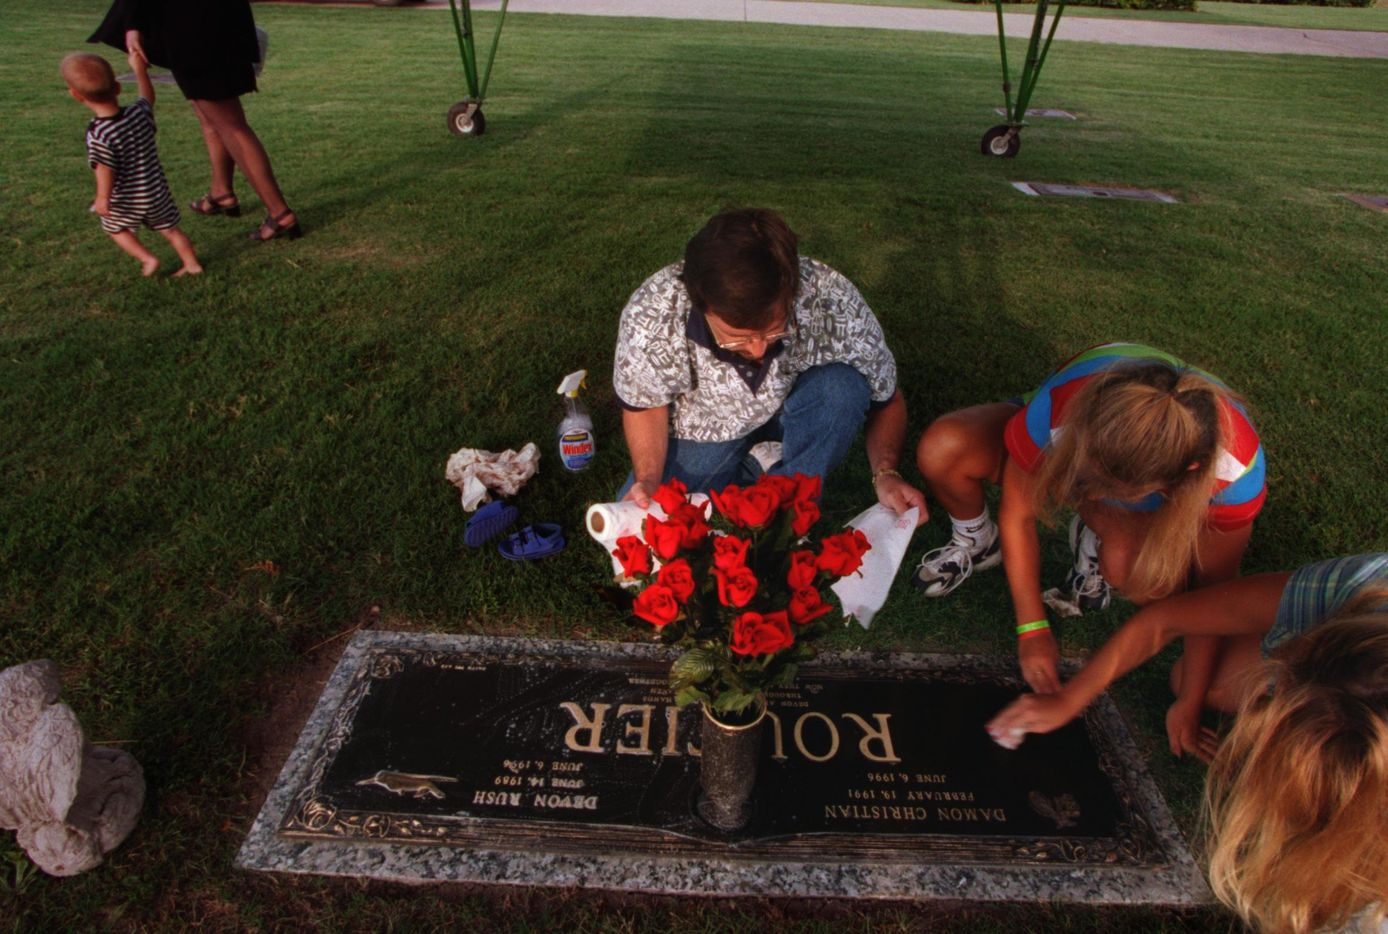 Darin Routier cleans the gravestone of his two slain sons, Devon and Damon, at Rest Haven Cemetary in Rockwall in June 1997.